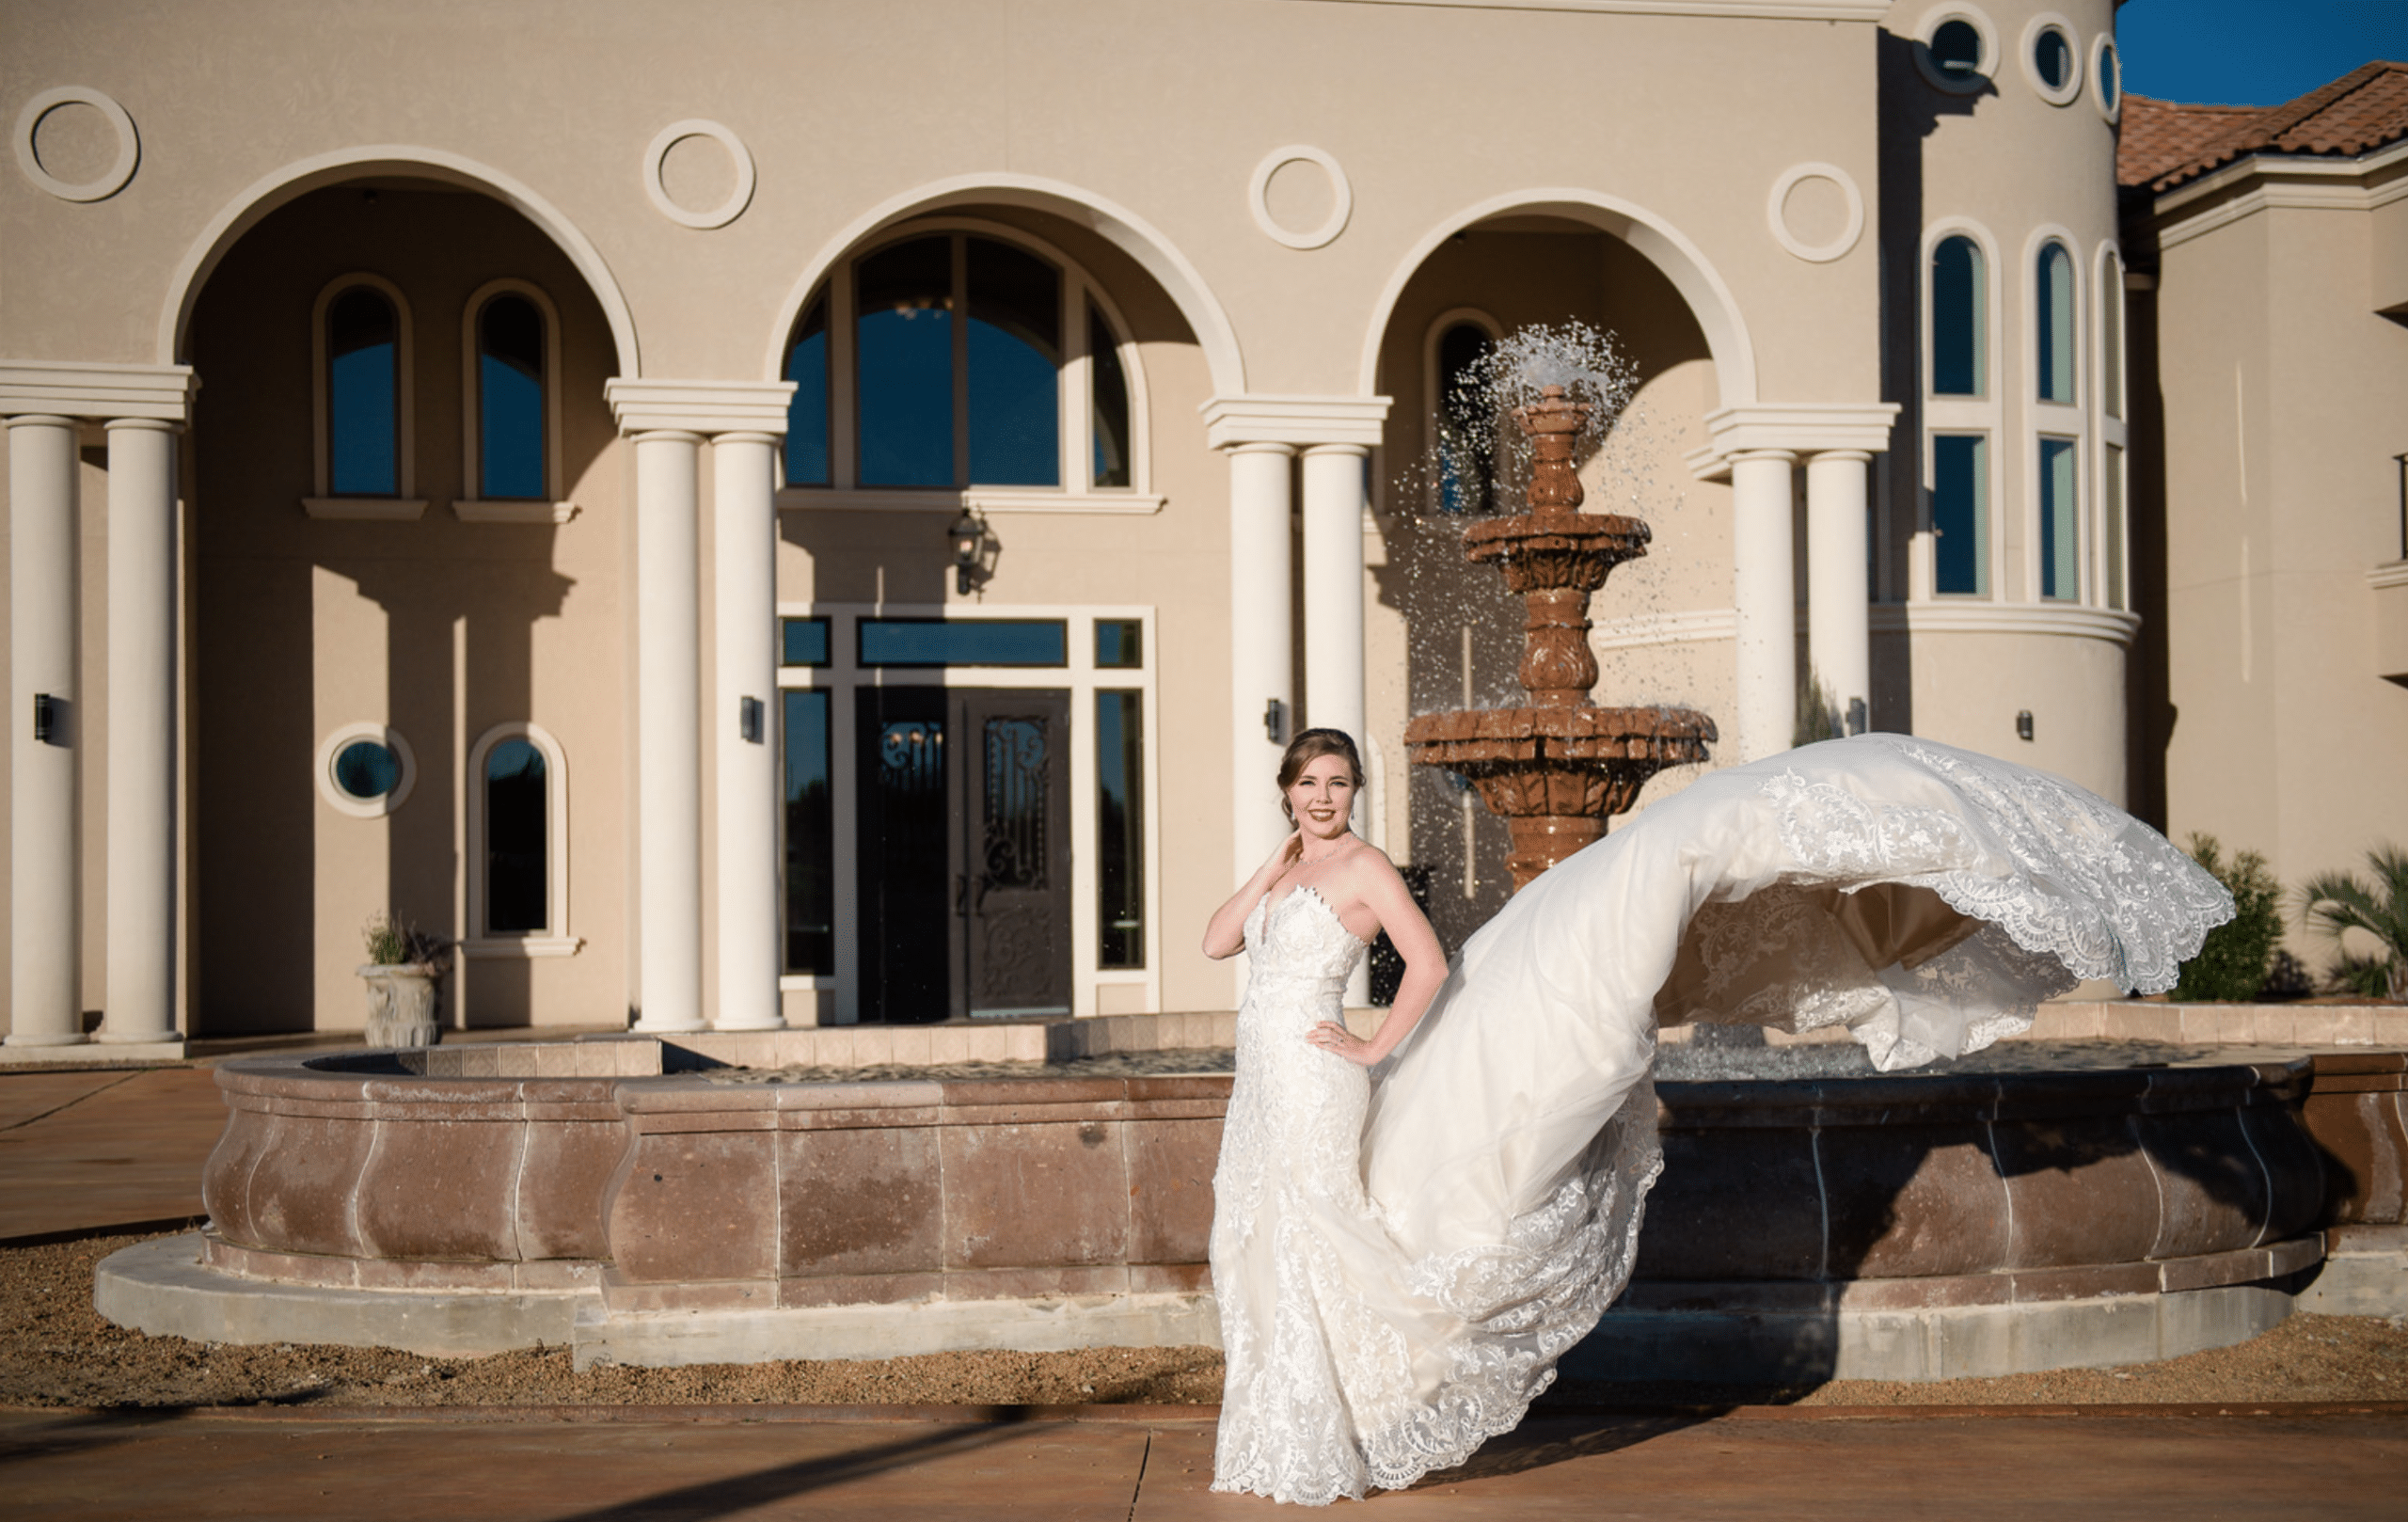 9 Tips On Finding & Booking Your Wedding Day Vendors